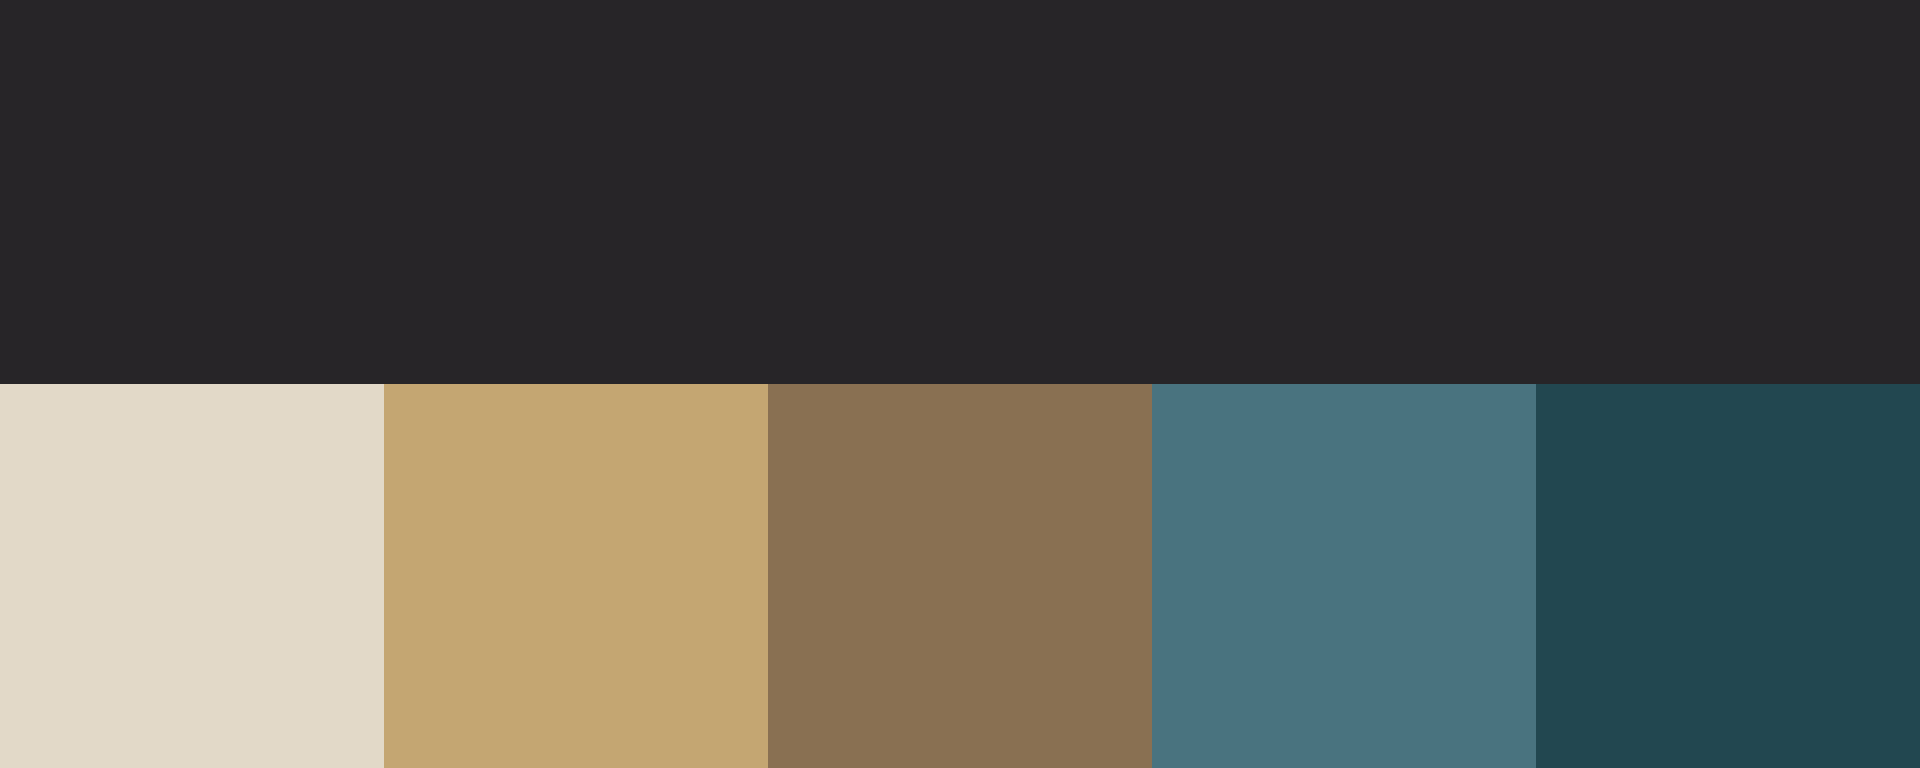 BB_ColorPalette5.jpg